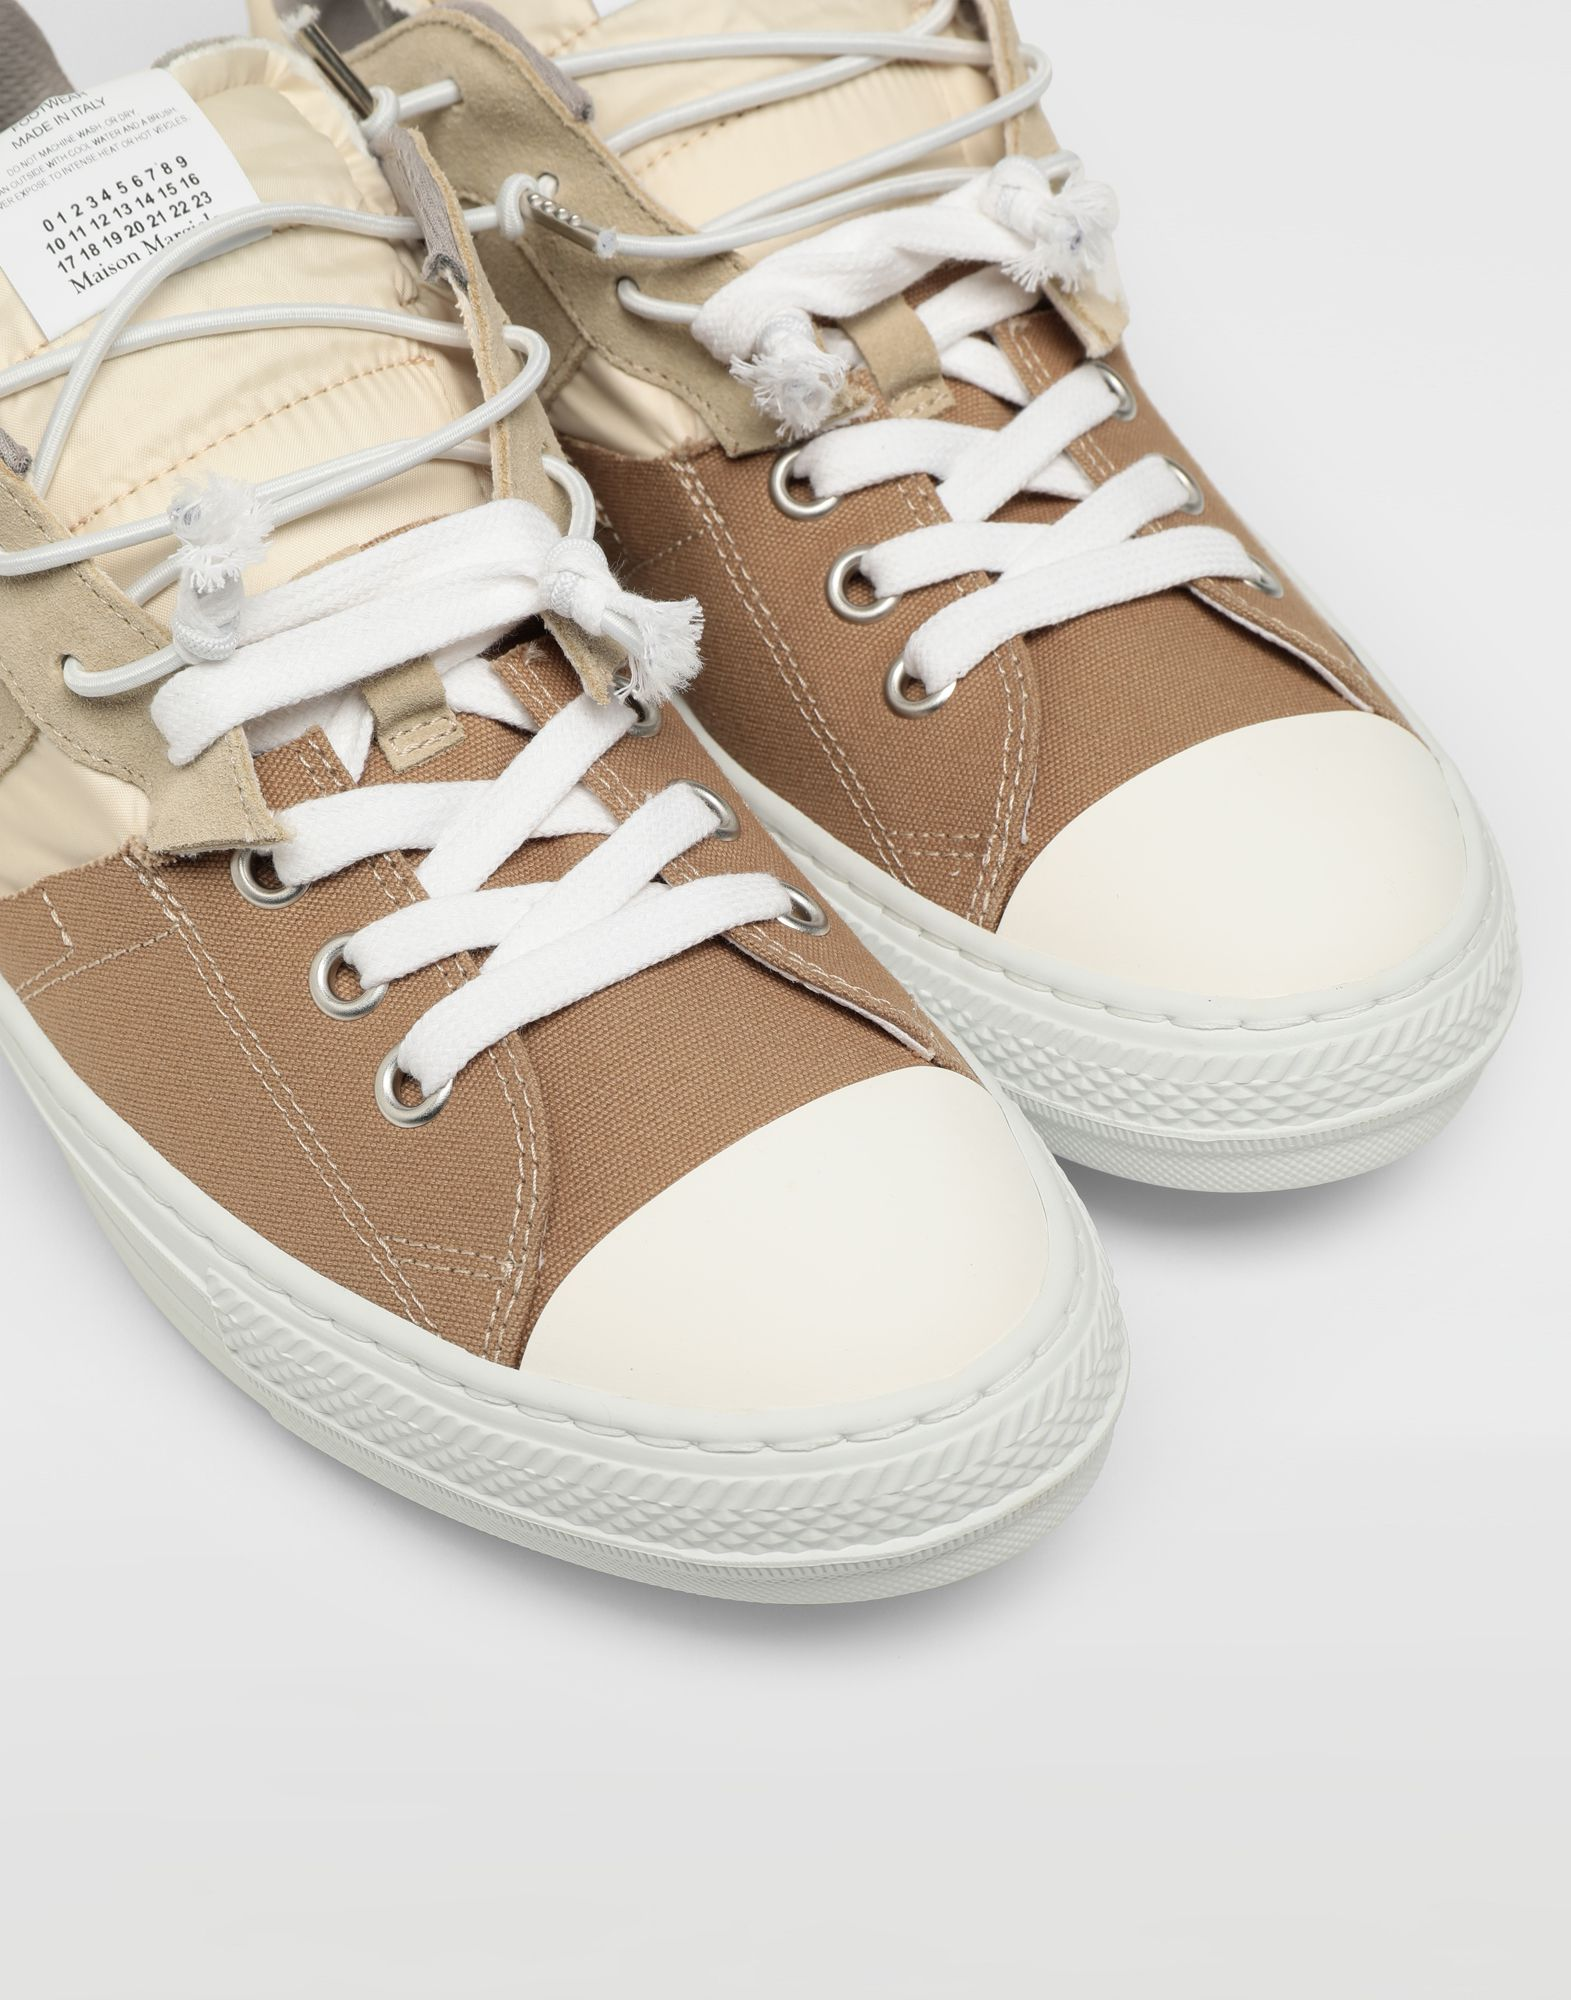 MAISON MARGIELA Spliced low top sneakers Sneakers Man a